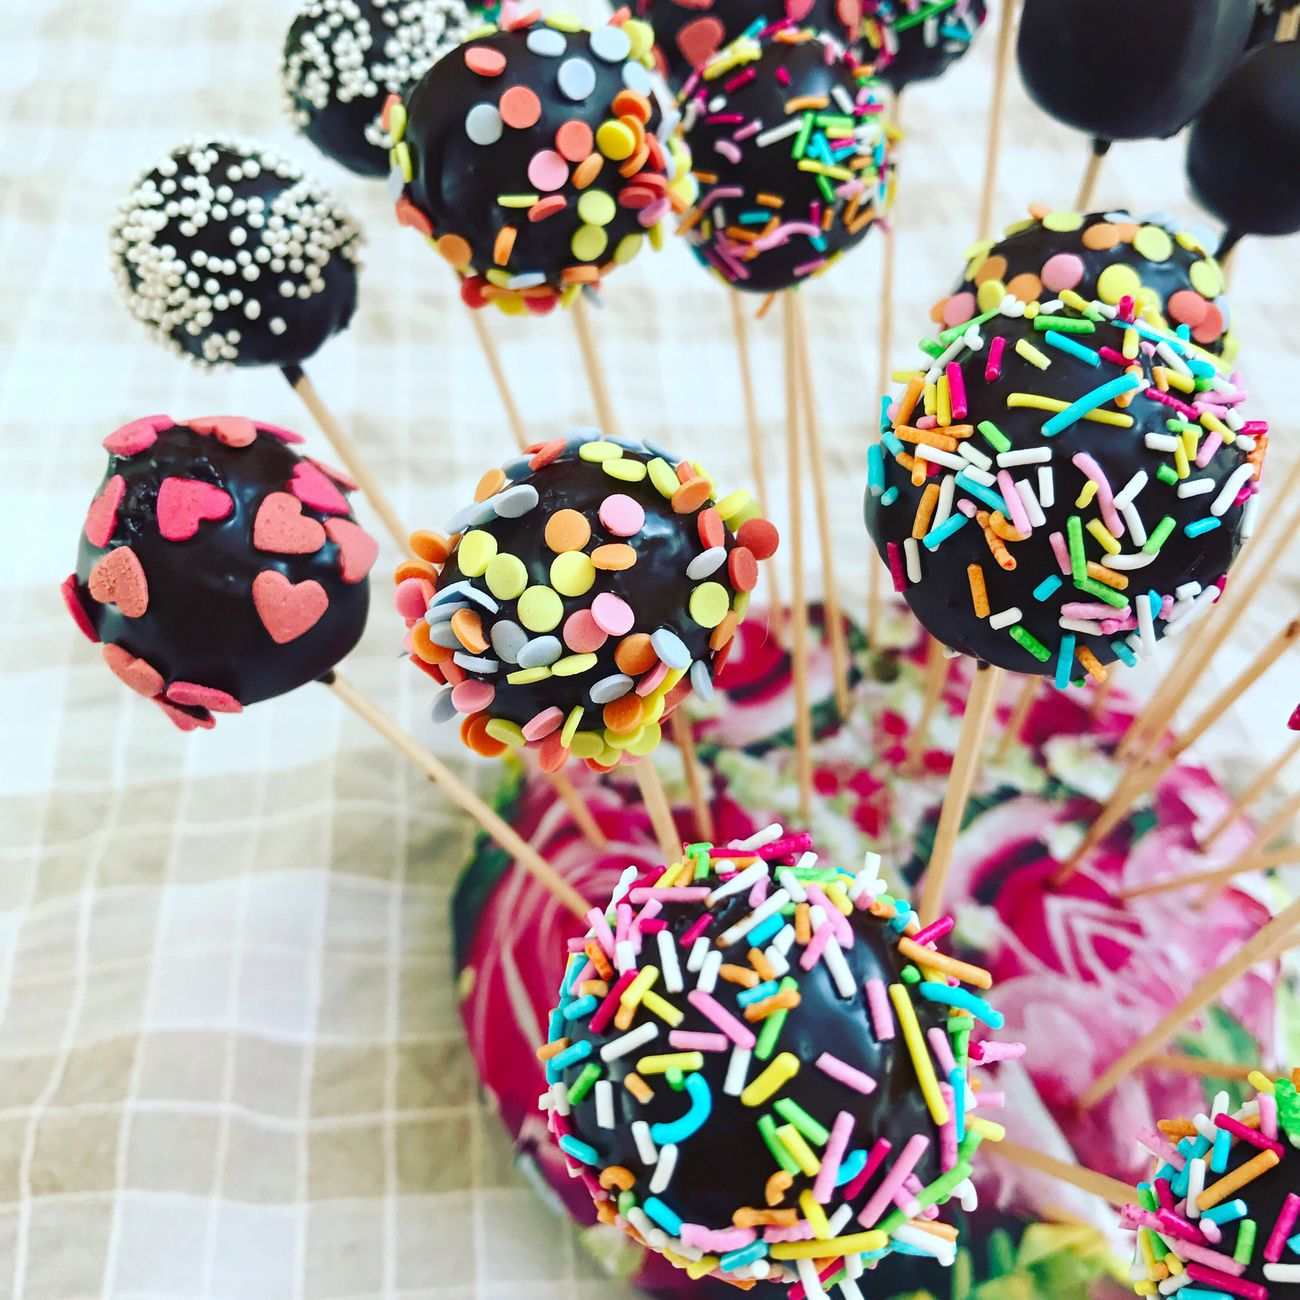 Cakepop Multi Colored Home Made Dessert Foodporn